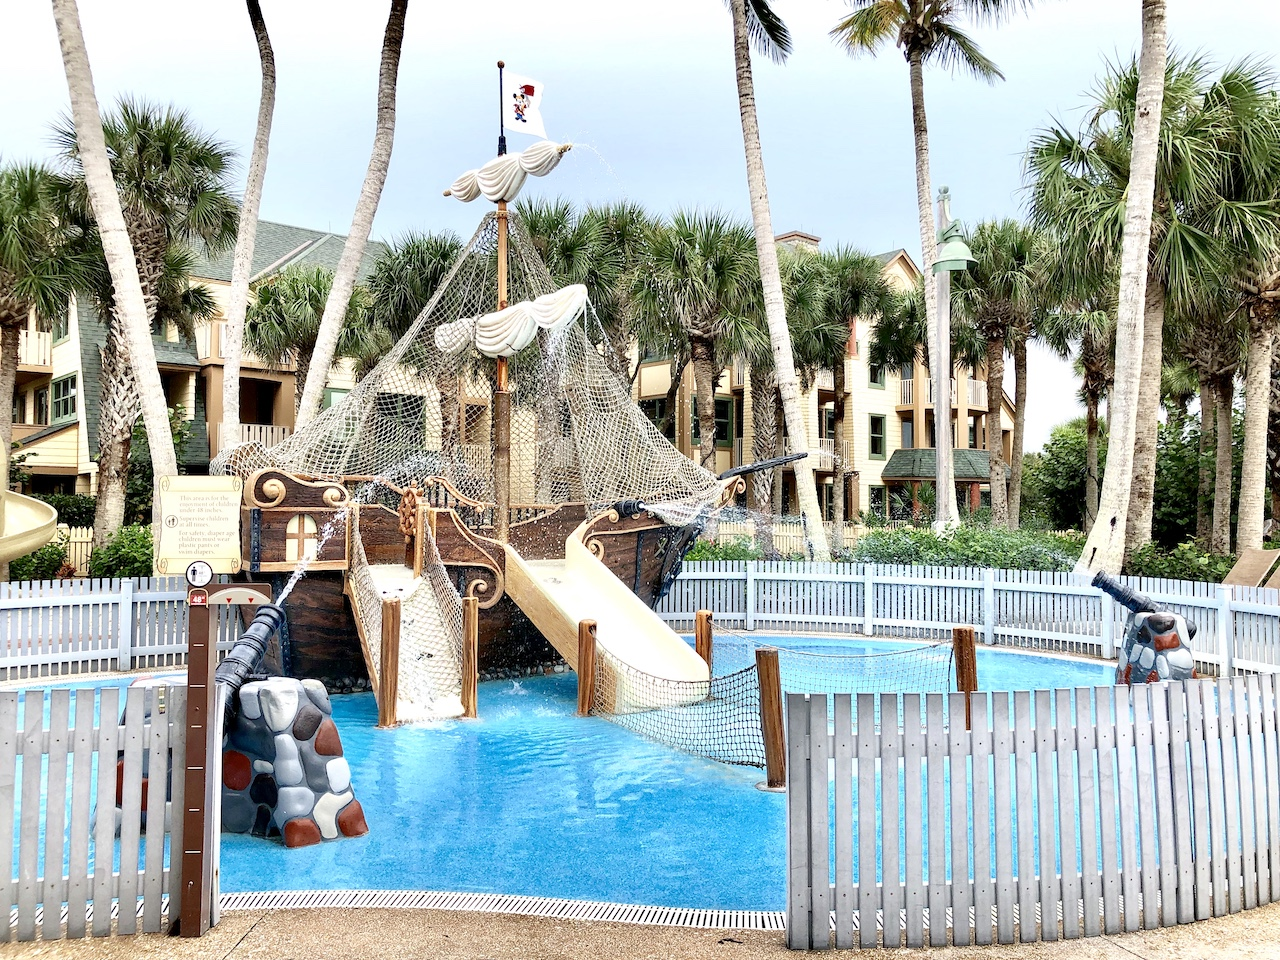 A beach vacation with Disney at Disney's Vero Beach Resort | Disney Resort on the beach | Florida Atlantic beach | Vero Beach, FL | Disney | Best beaches with kids | #disneyresort #disneyhotel #disneysverobeach #disneybeachresort #Disneyvacation